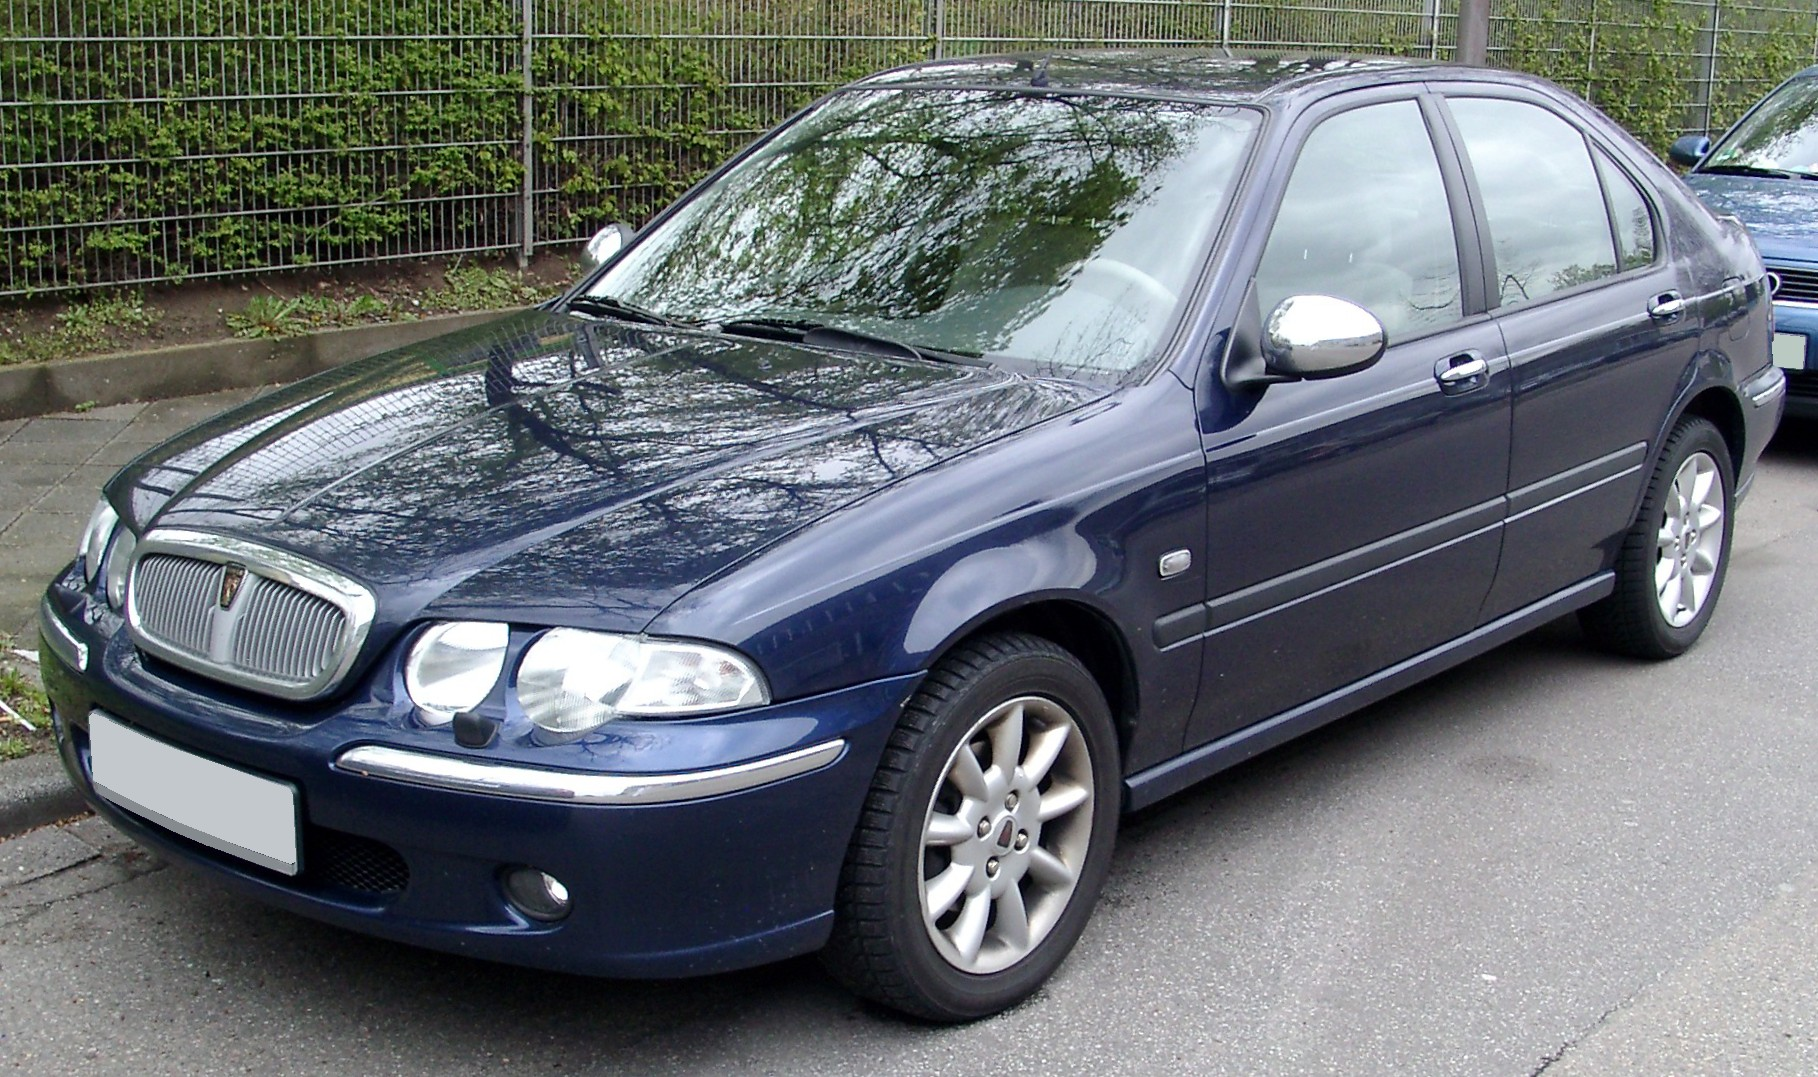 Rover 45 front widescreen Wallpapers HD